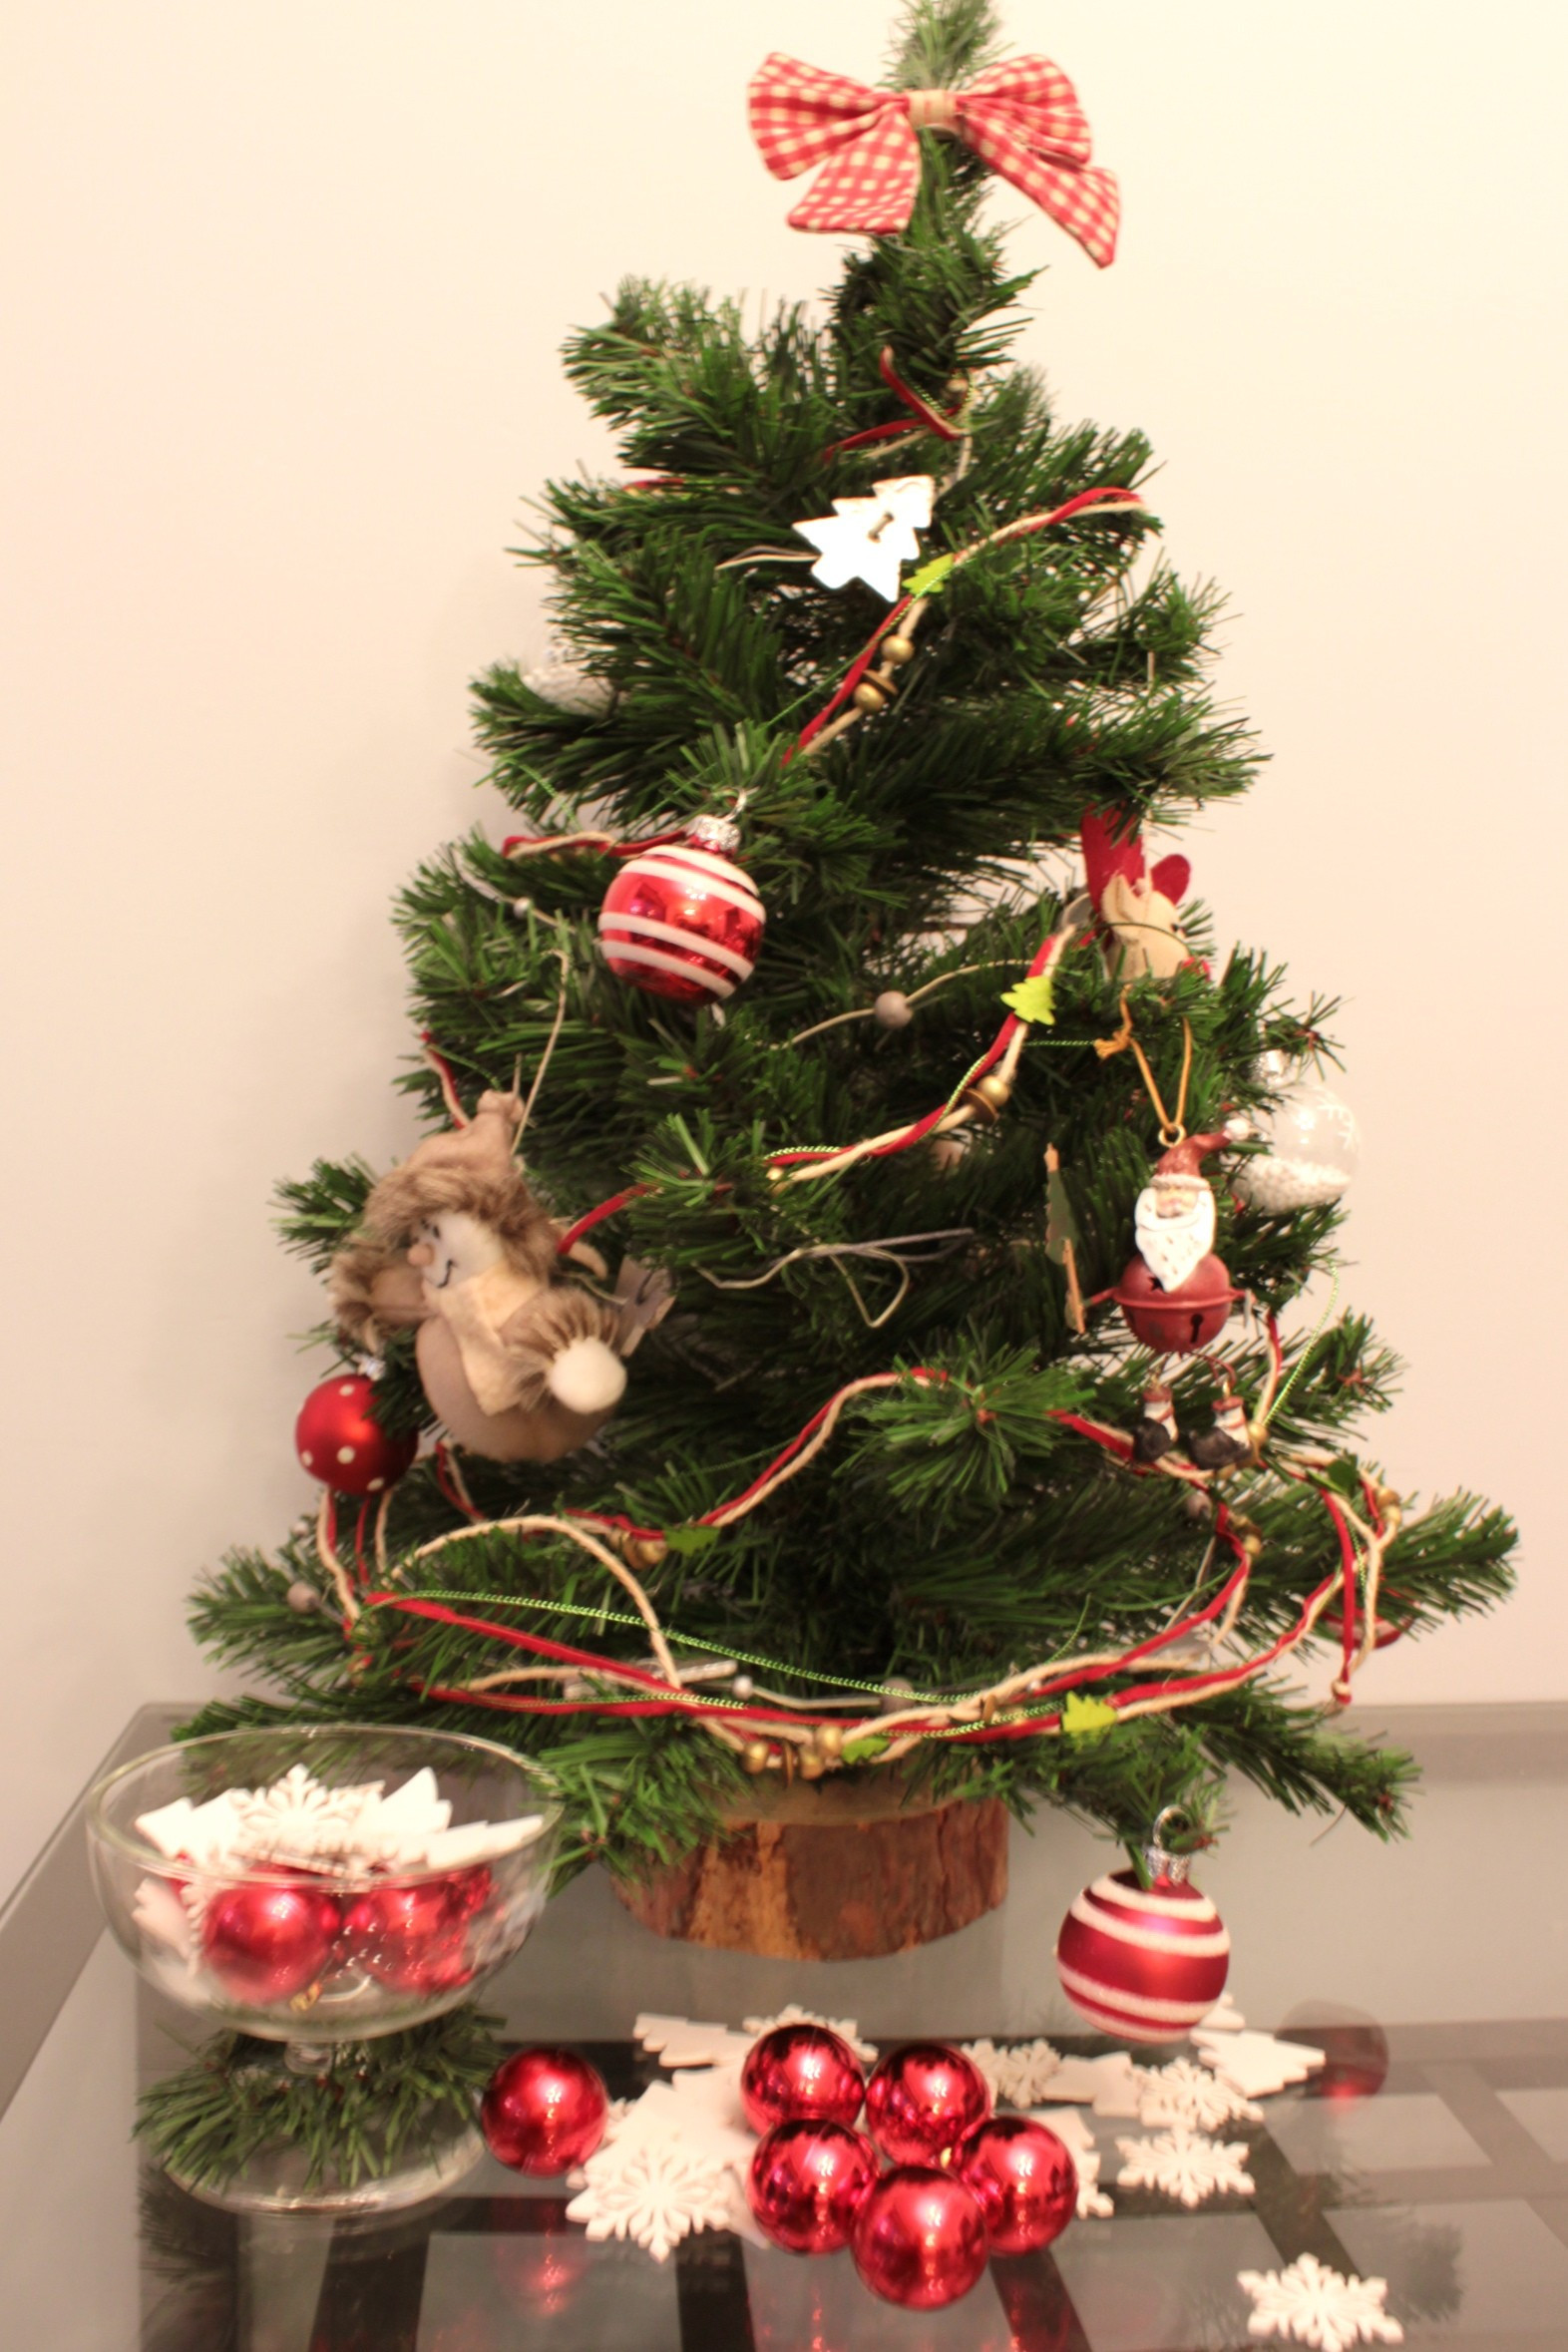 Small Decorated Christmas Trees Elegant Small Decorative Christmas Trees Of Charming 48 Models Small Decorated Christmas Trees